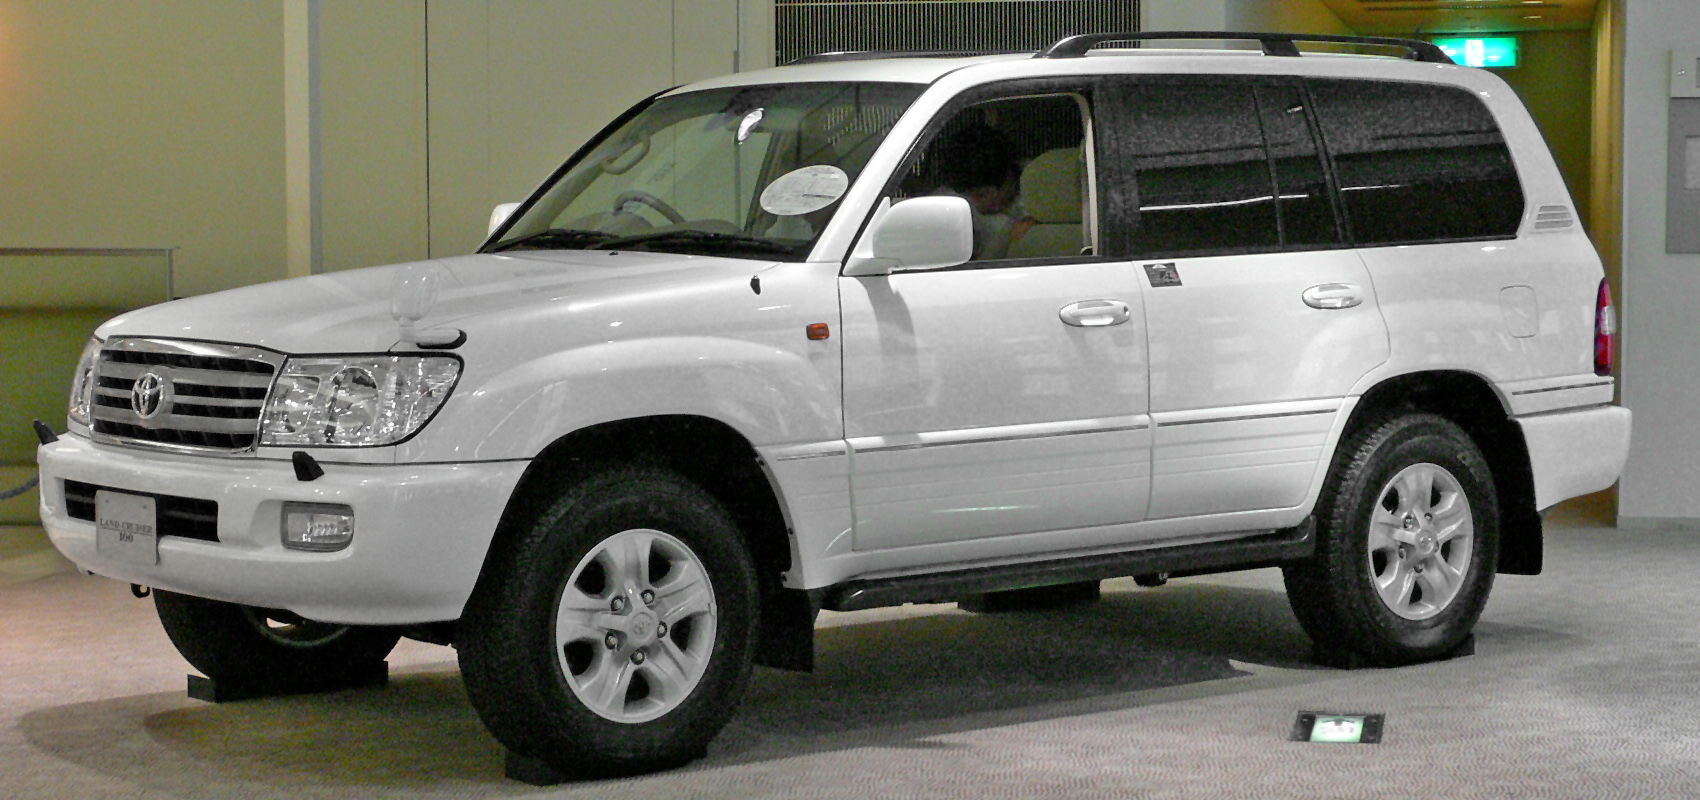 Toyota Land Cruiser 100 Technical Details History Photos